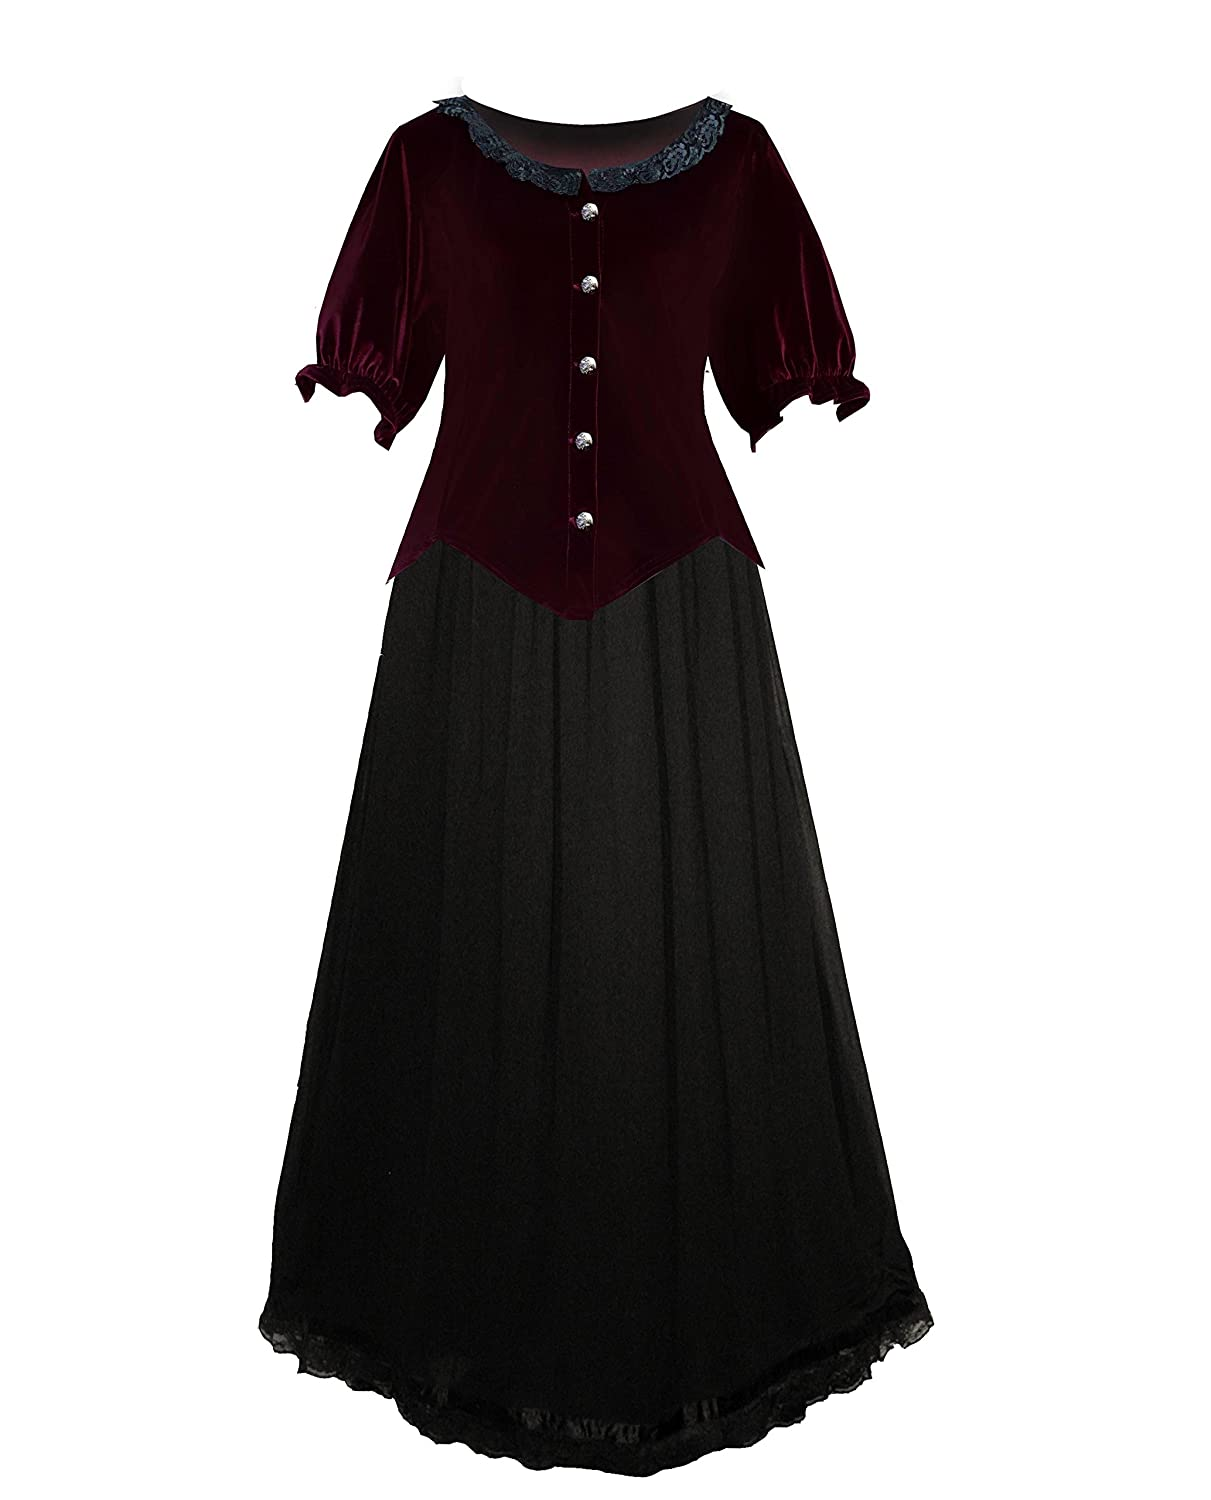 8685fe96fc Titanic Fashion – 1st Class Women s Clothing Victorian Steampunk Gothic  Renaissance Velvet Top   Long Skirt